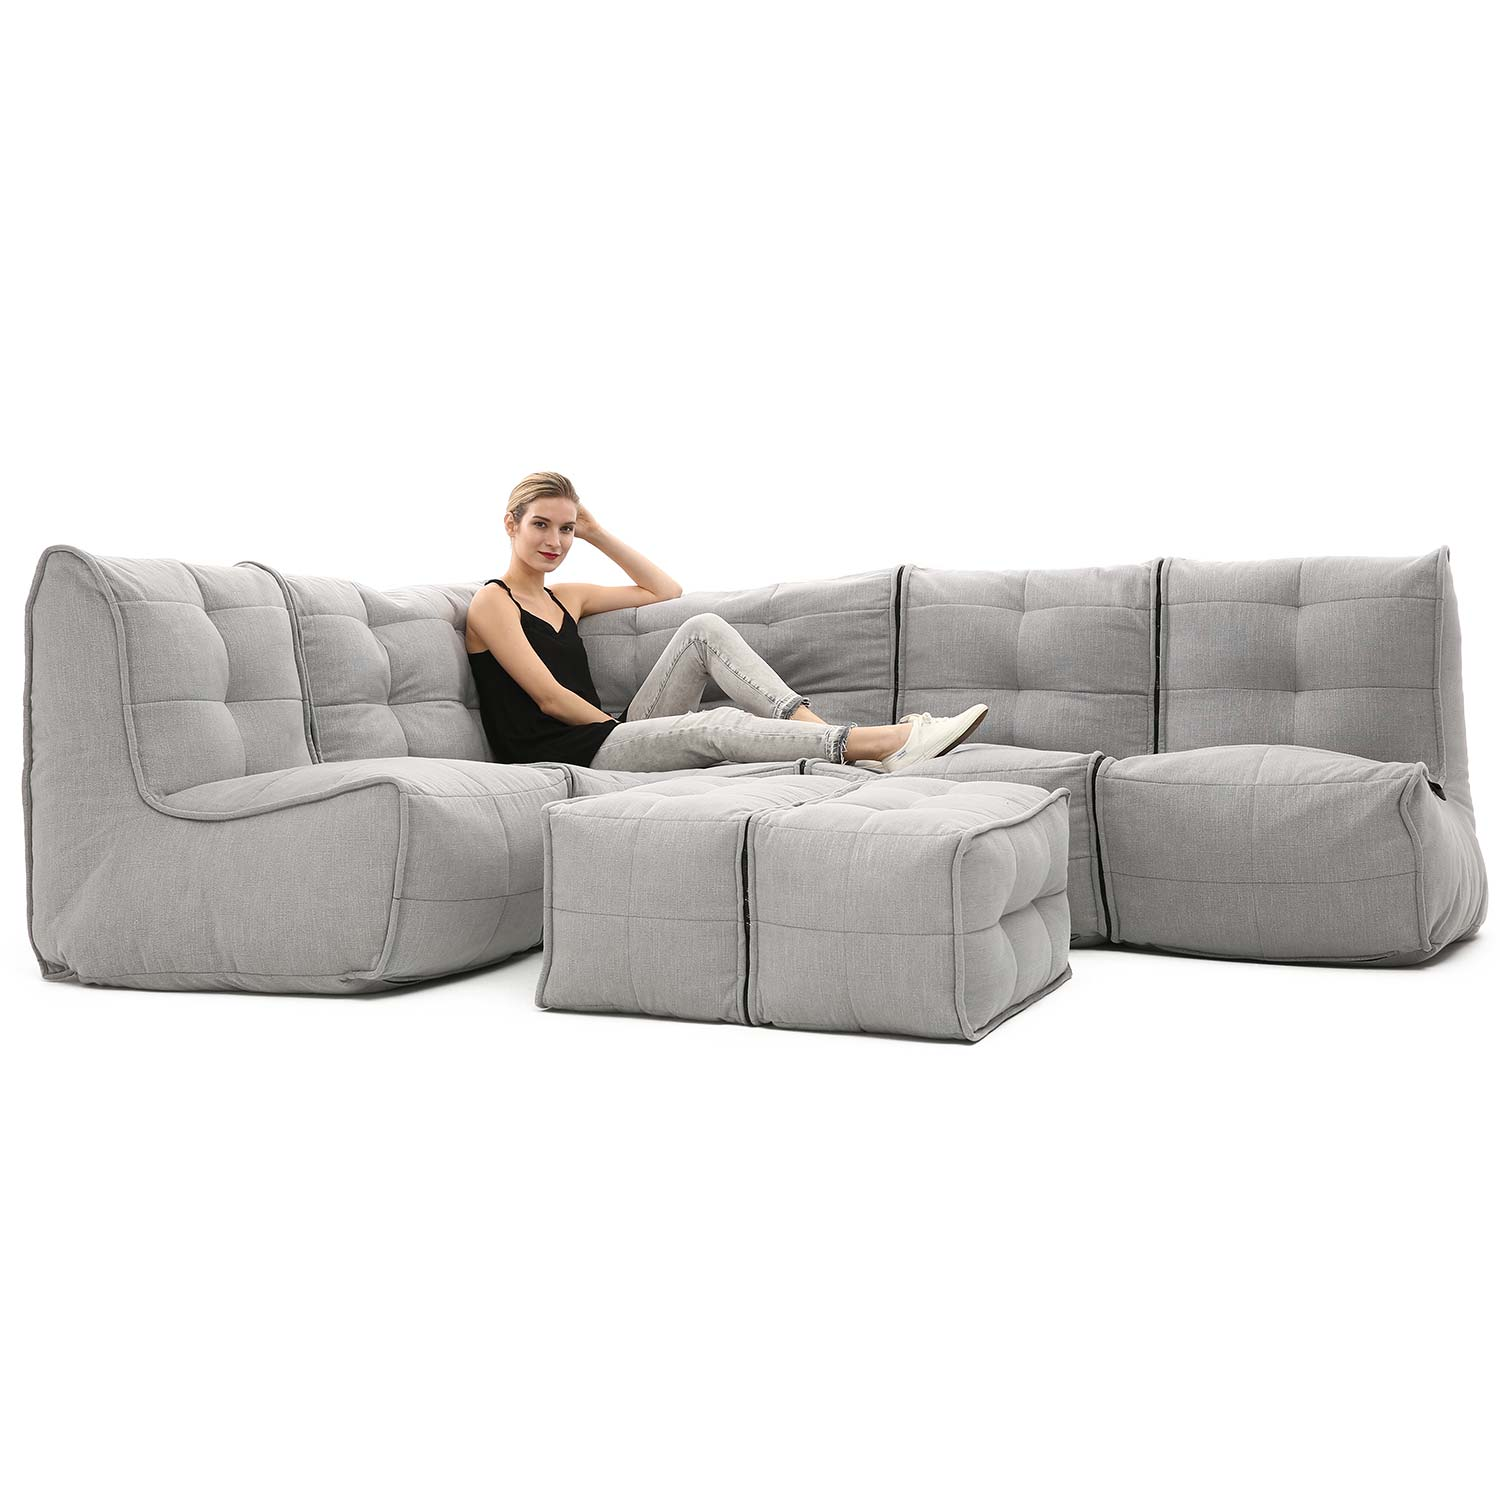 Modular Lounge Sets Ready To Lounge Sets Mod 5 Living Lounge Keystone Grey With Linen